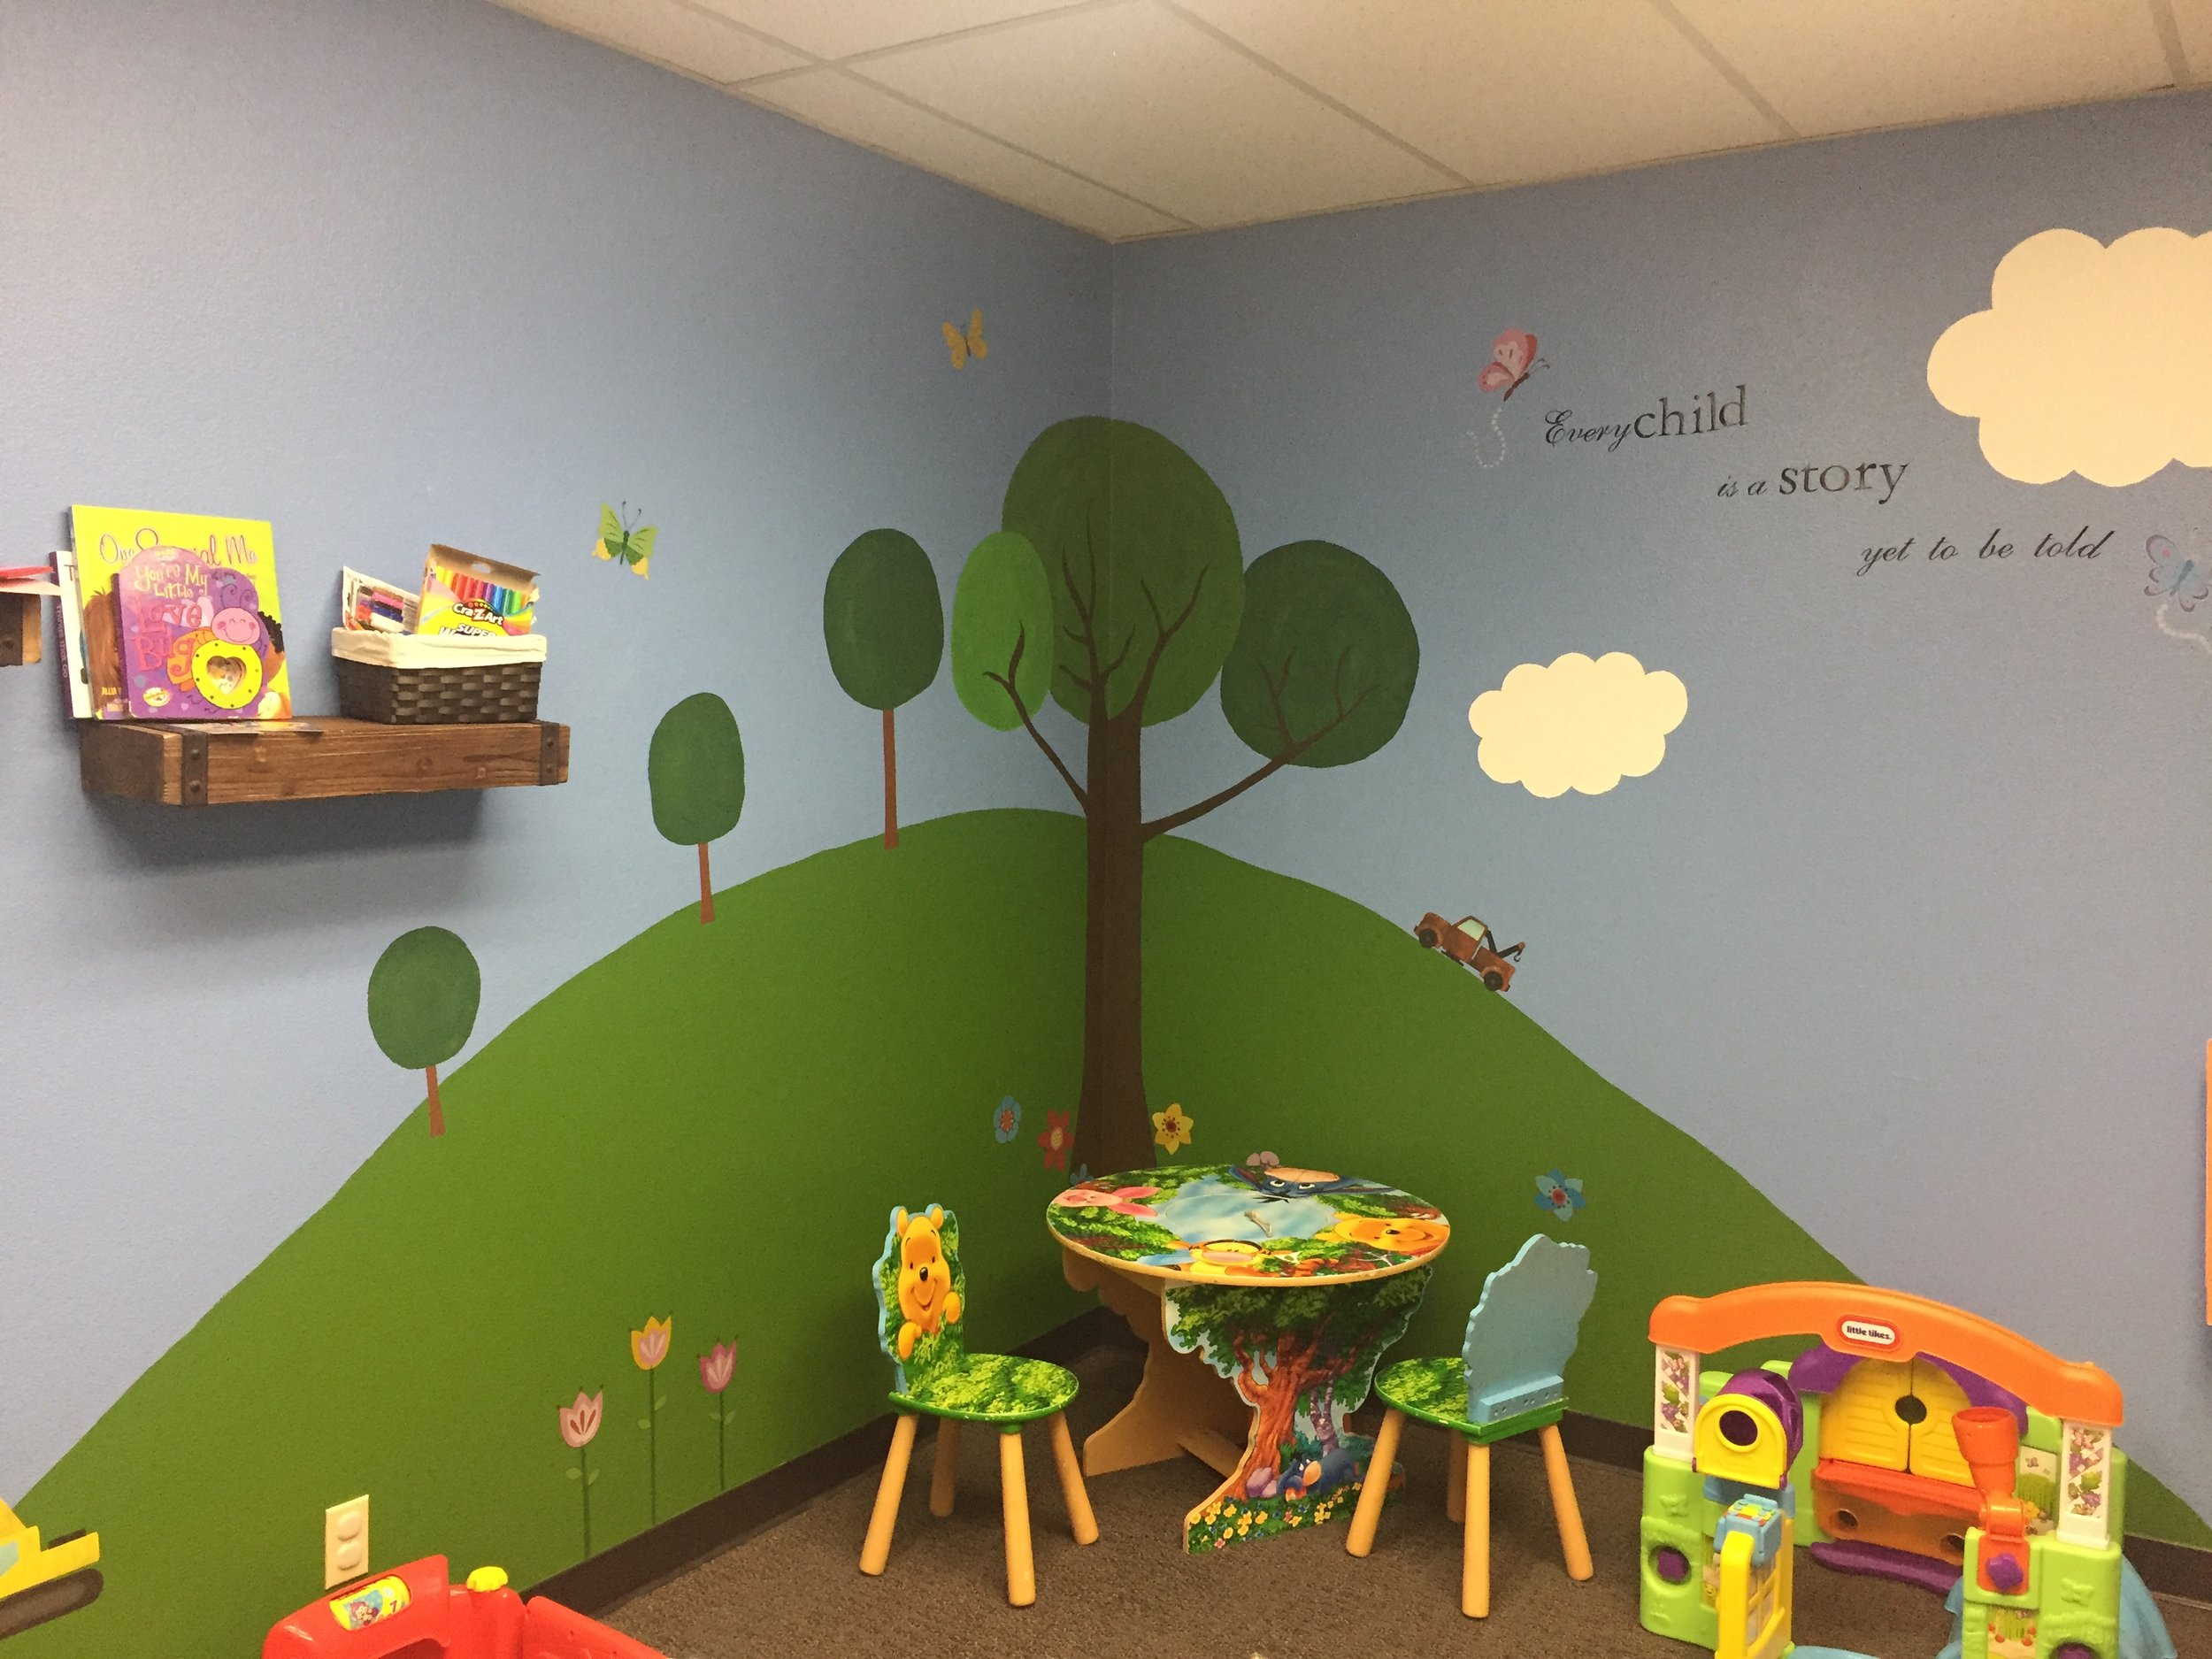 The Nursery - Our nursery team combines a love of God with creativity to help your child have fun in an inviting park themed atmosphere.